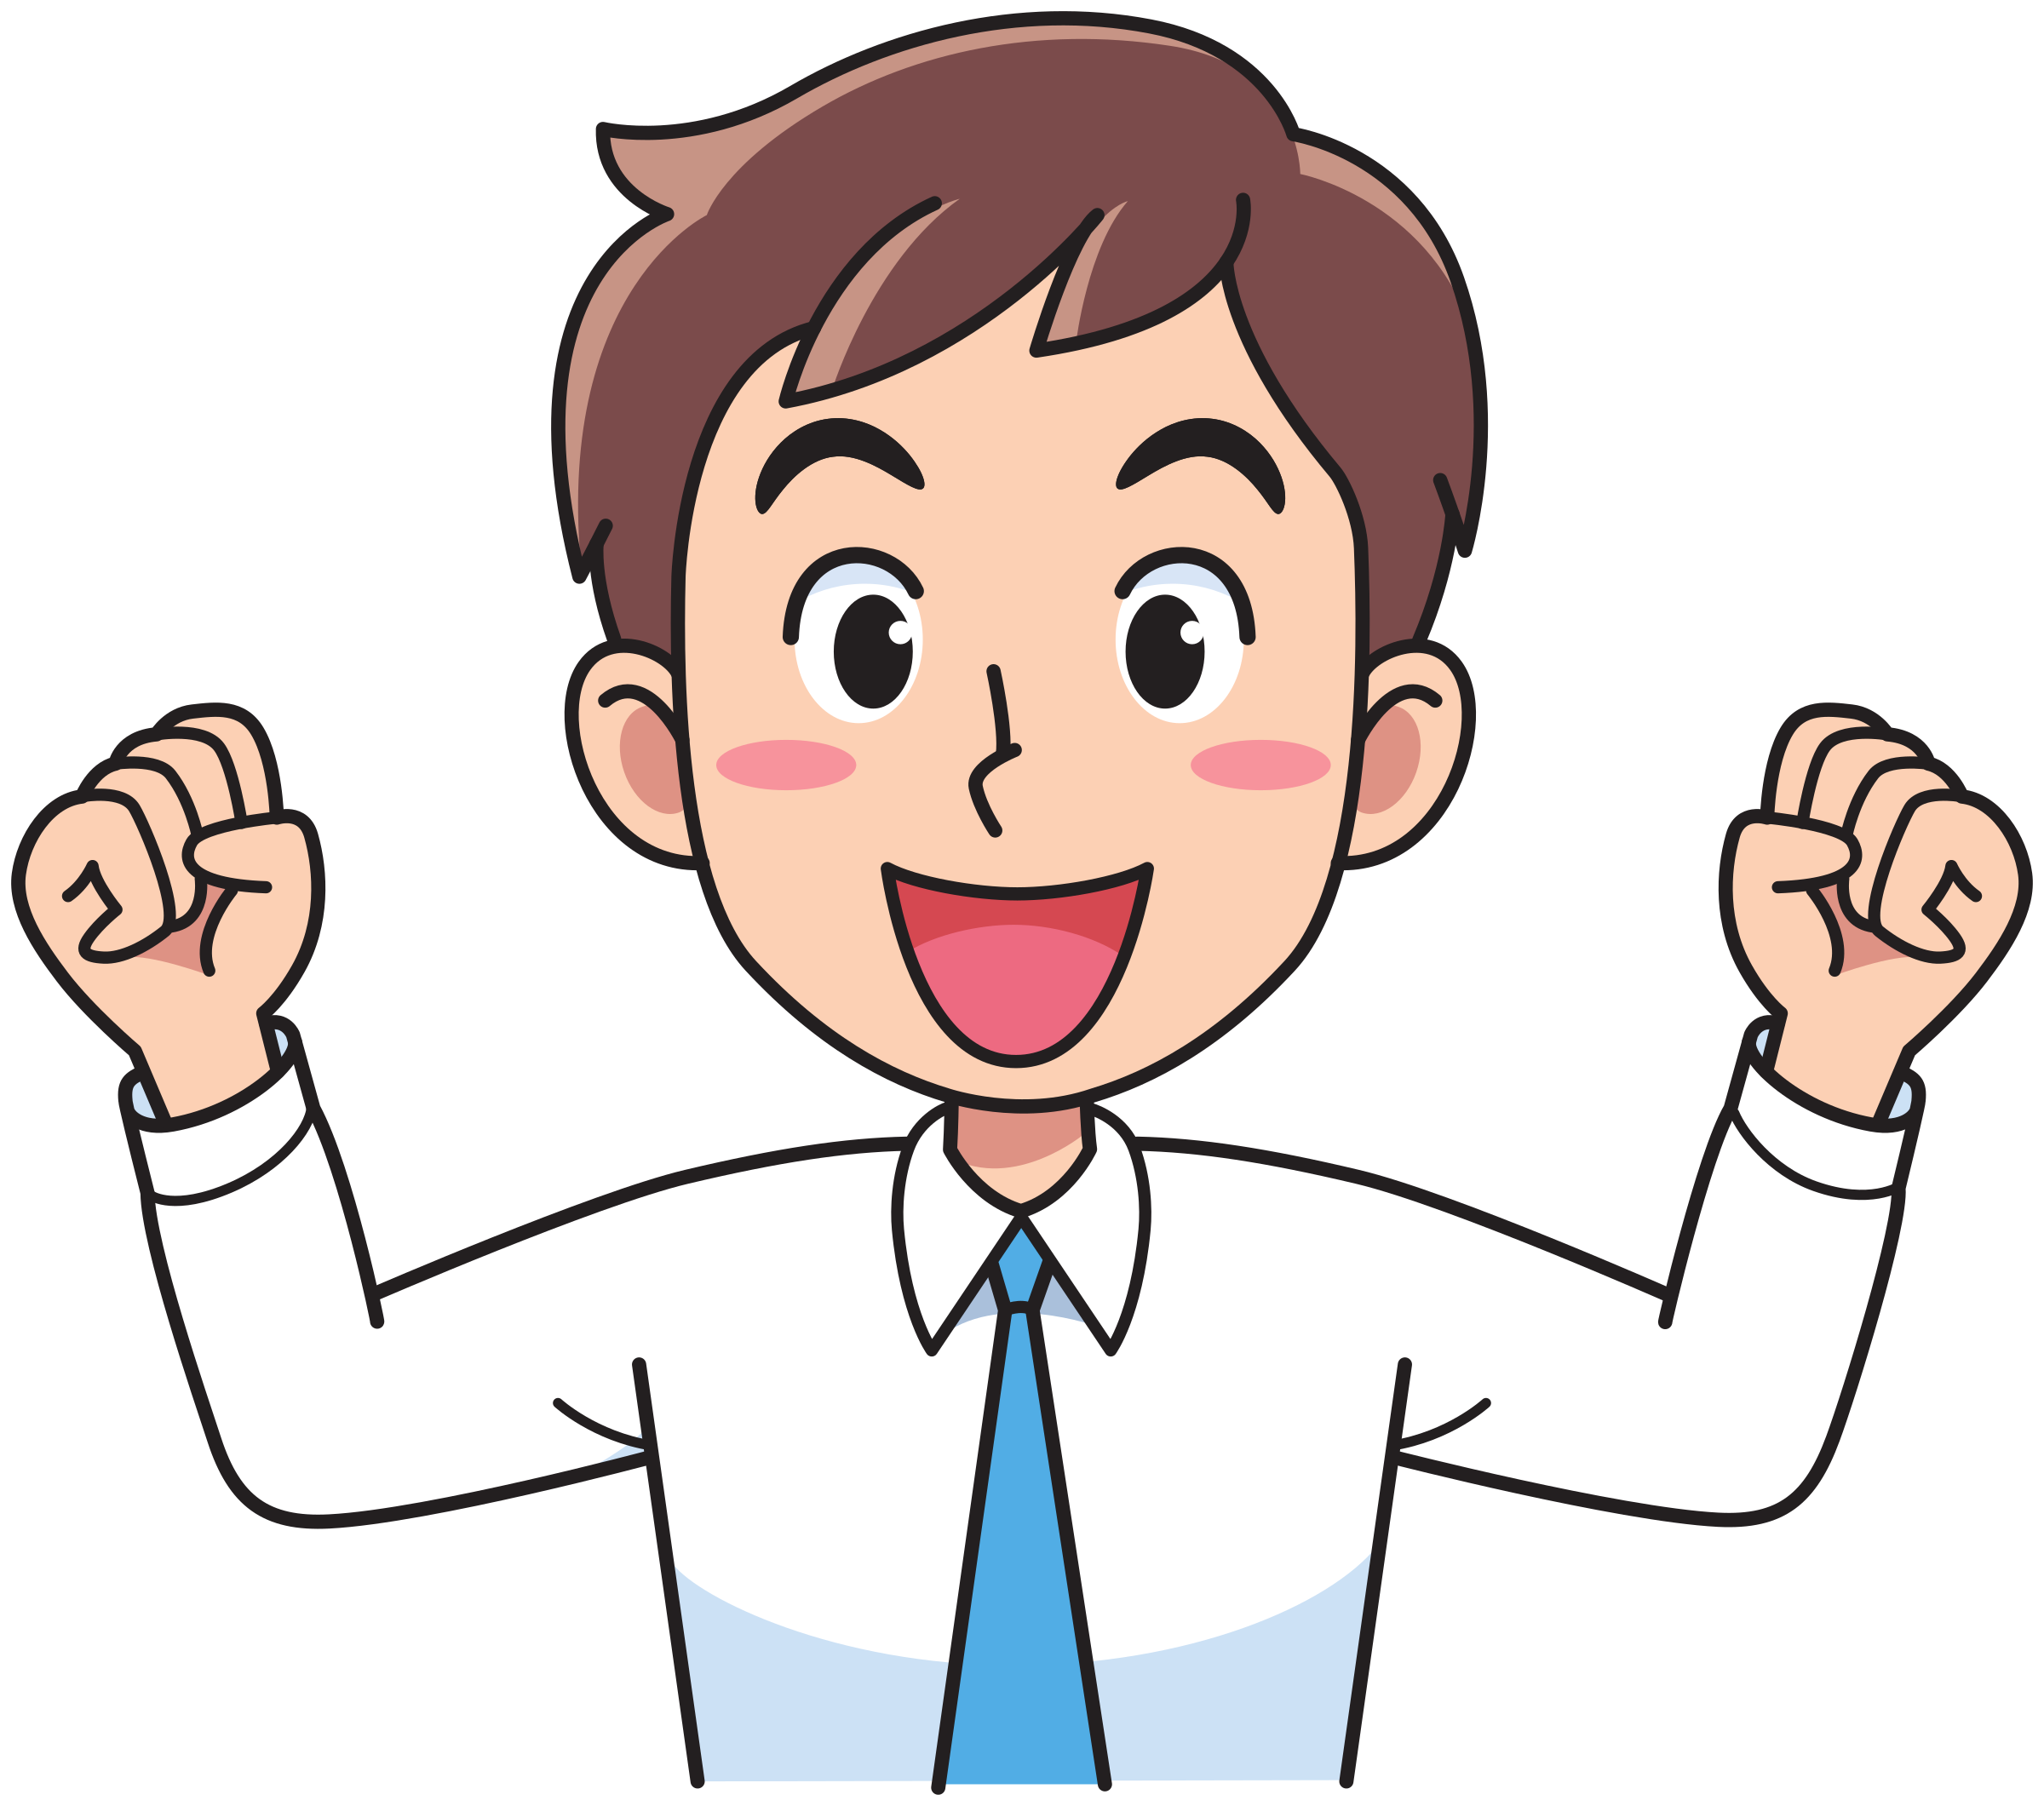 Fist pump png. Business man icons free